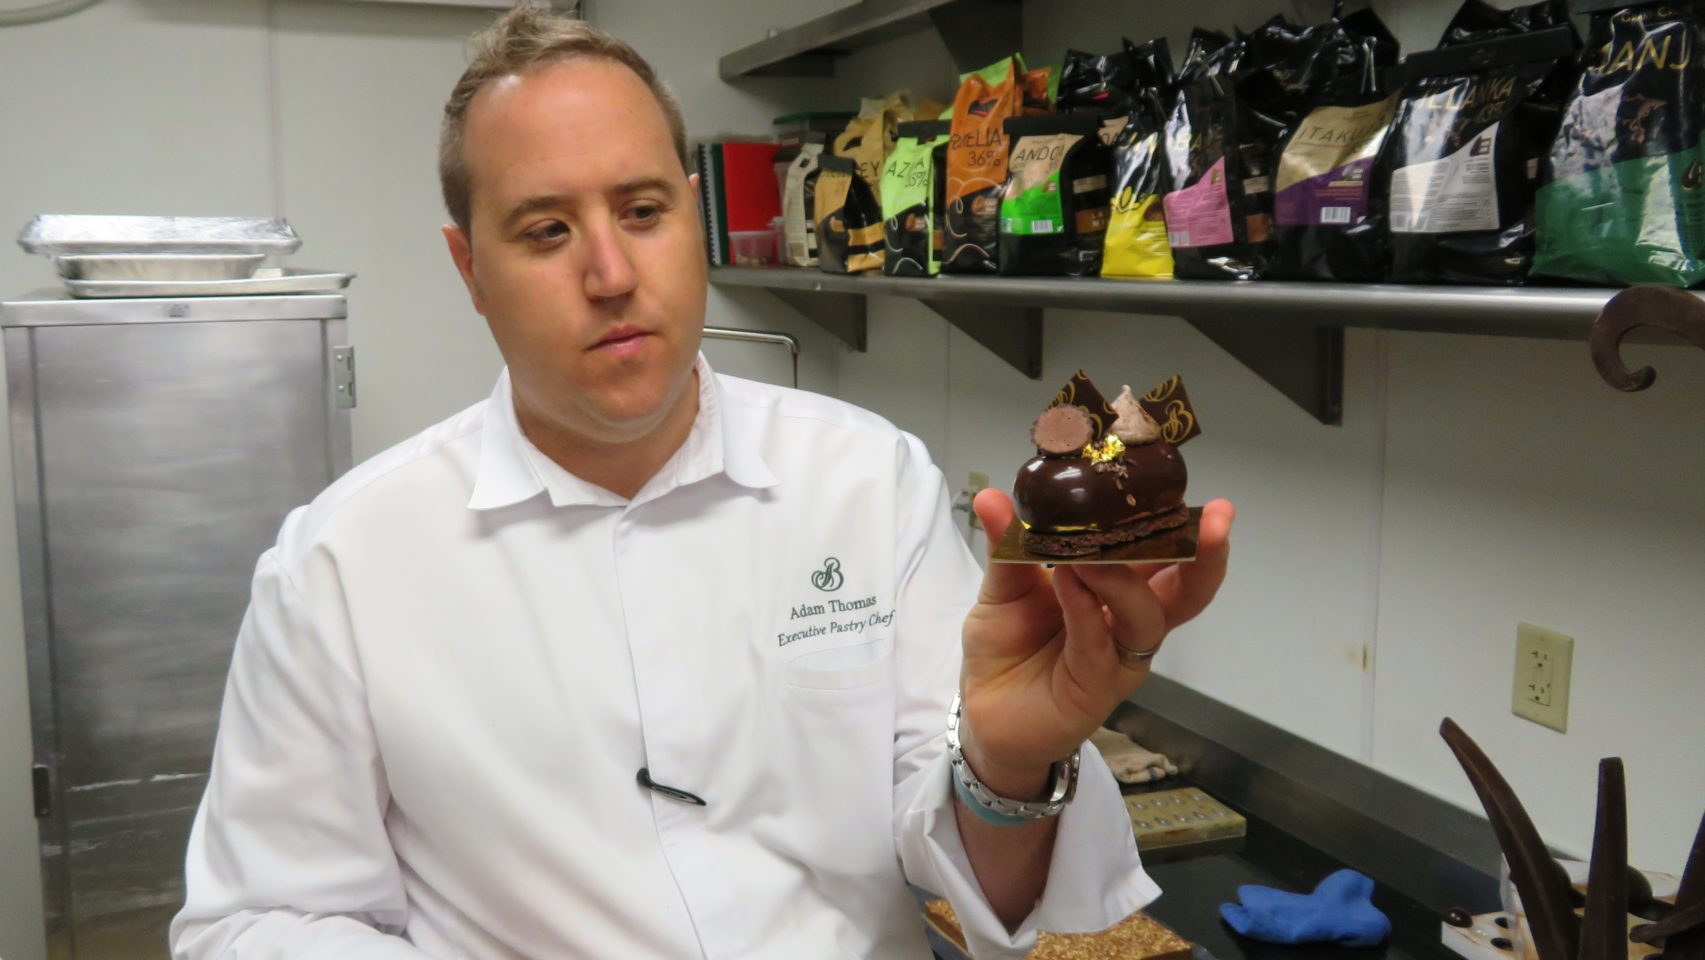 Culinary Excellence at <em><strong>The Broadmoor</strong> </em>~ Executive Pastry Chef Adam Thomas with one of his divine chocolate creations